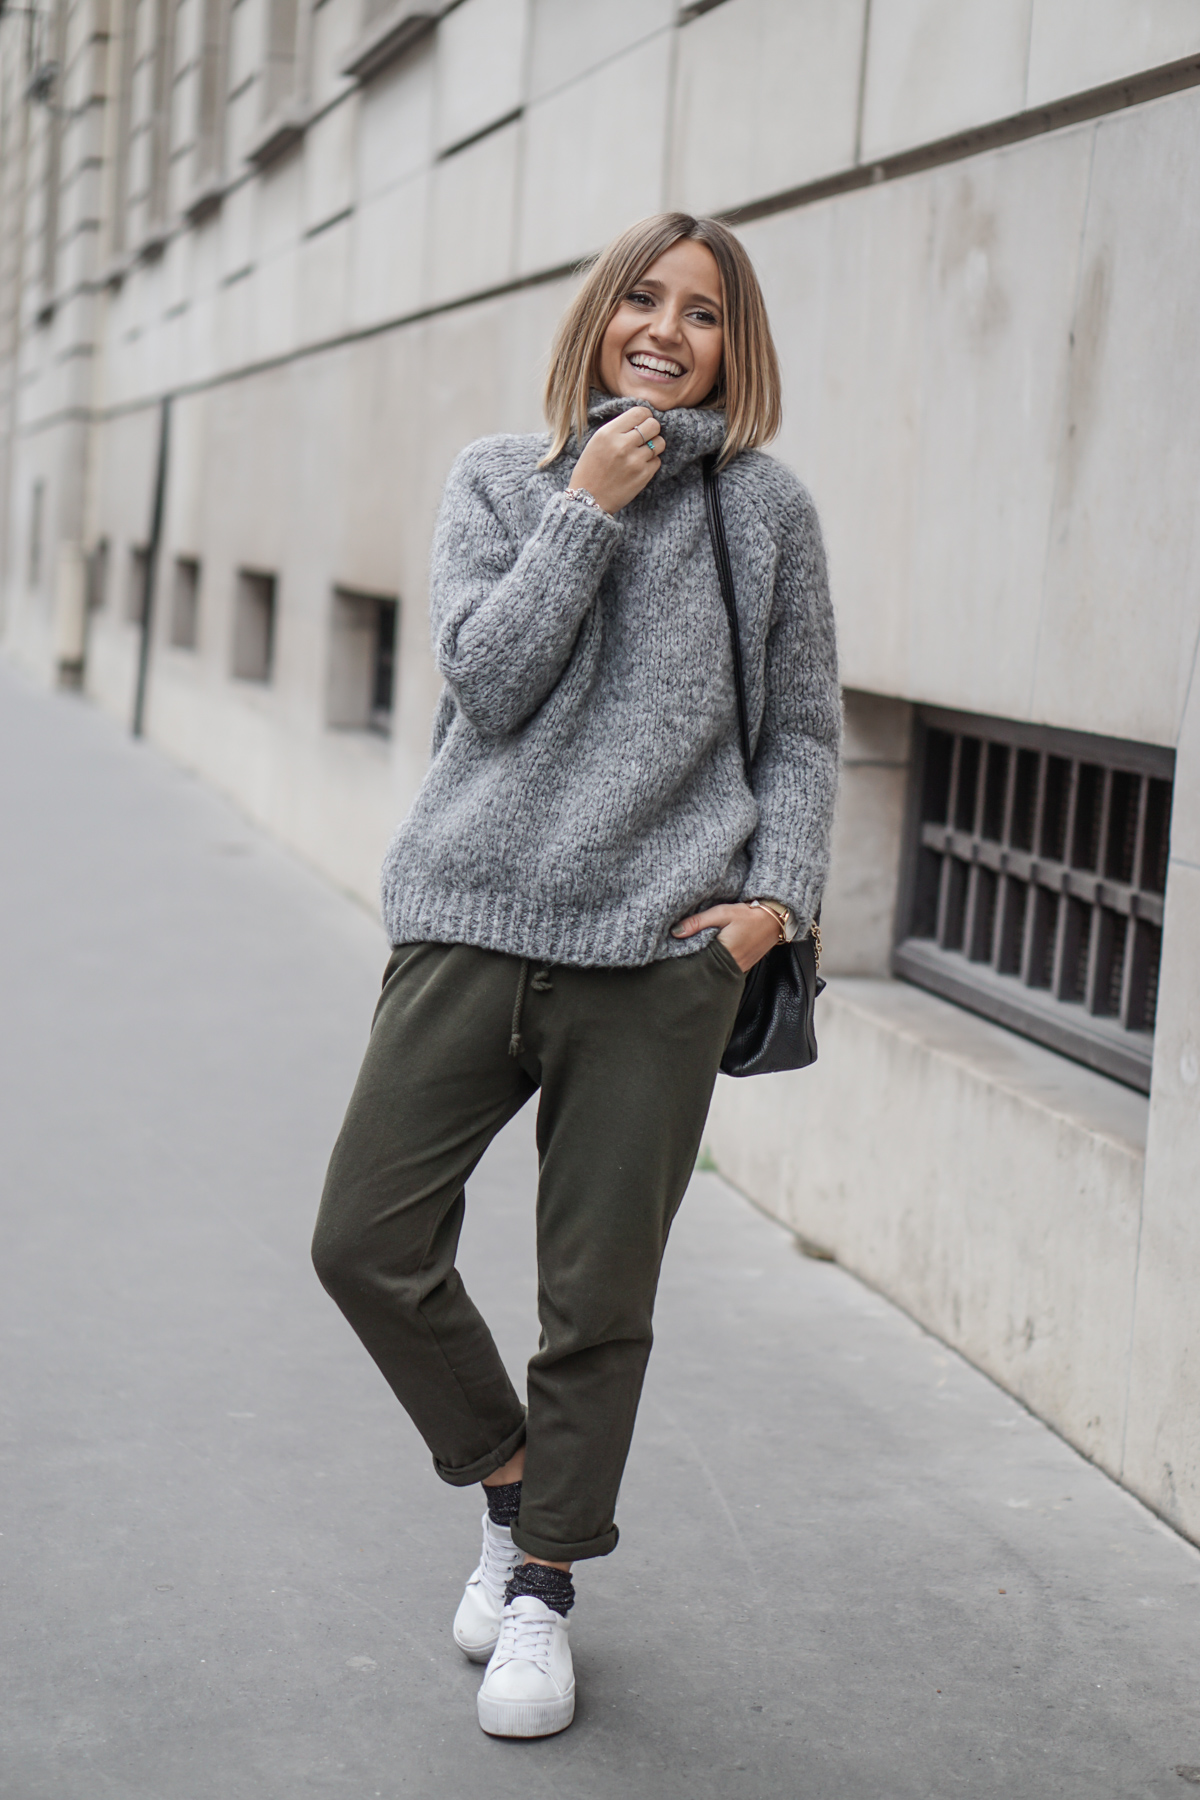 Outfits With Joggers Everything You Need To Know About The Joggers Trend And How To Wear Them